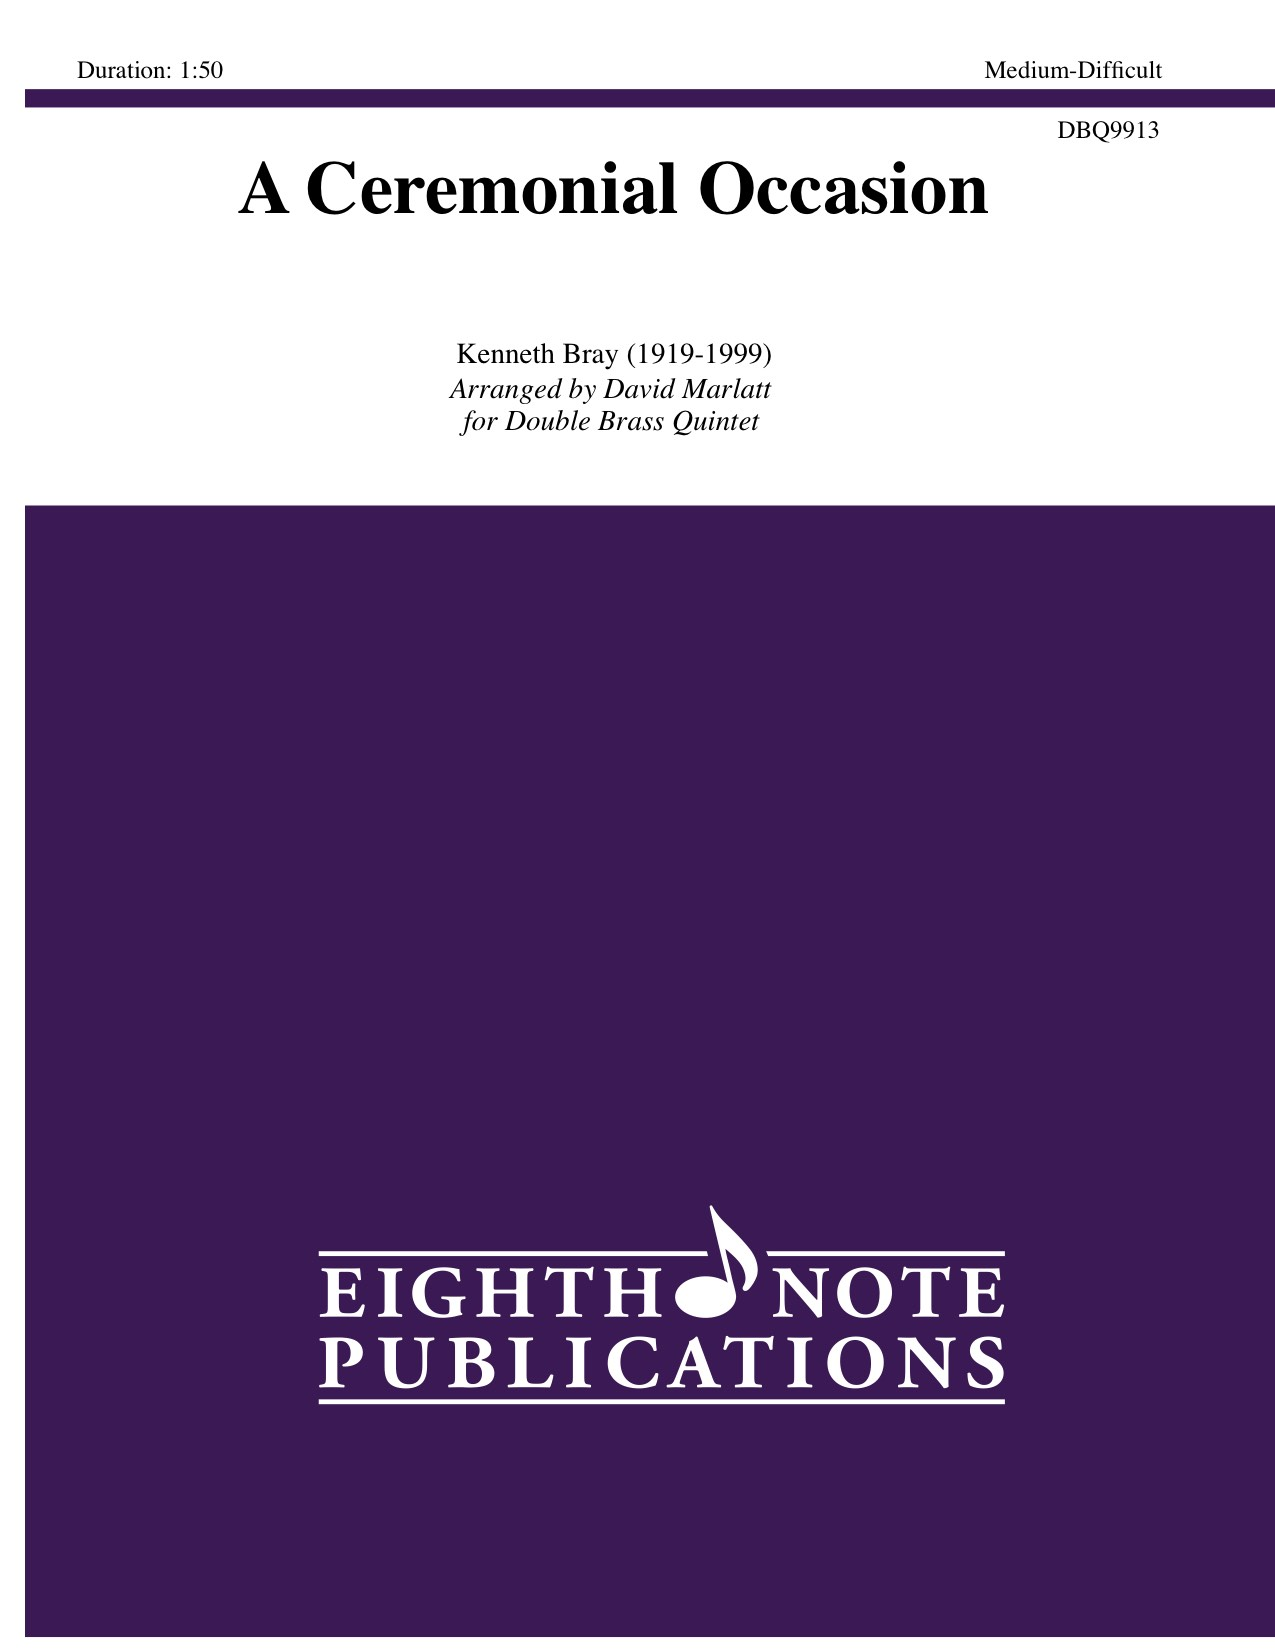 Ceremonial Occasion, A - Kenneth Bray